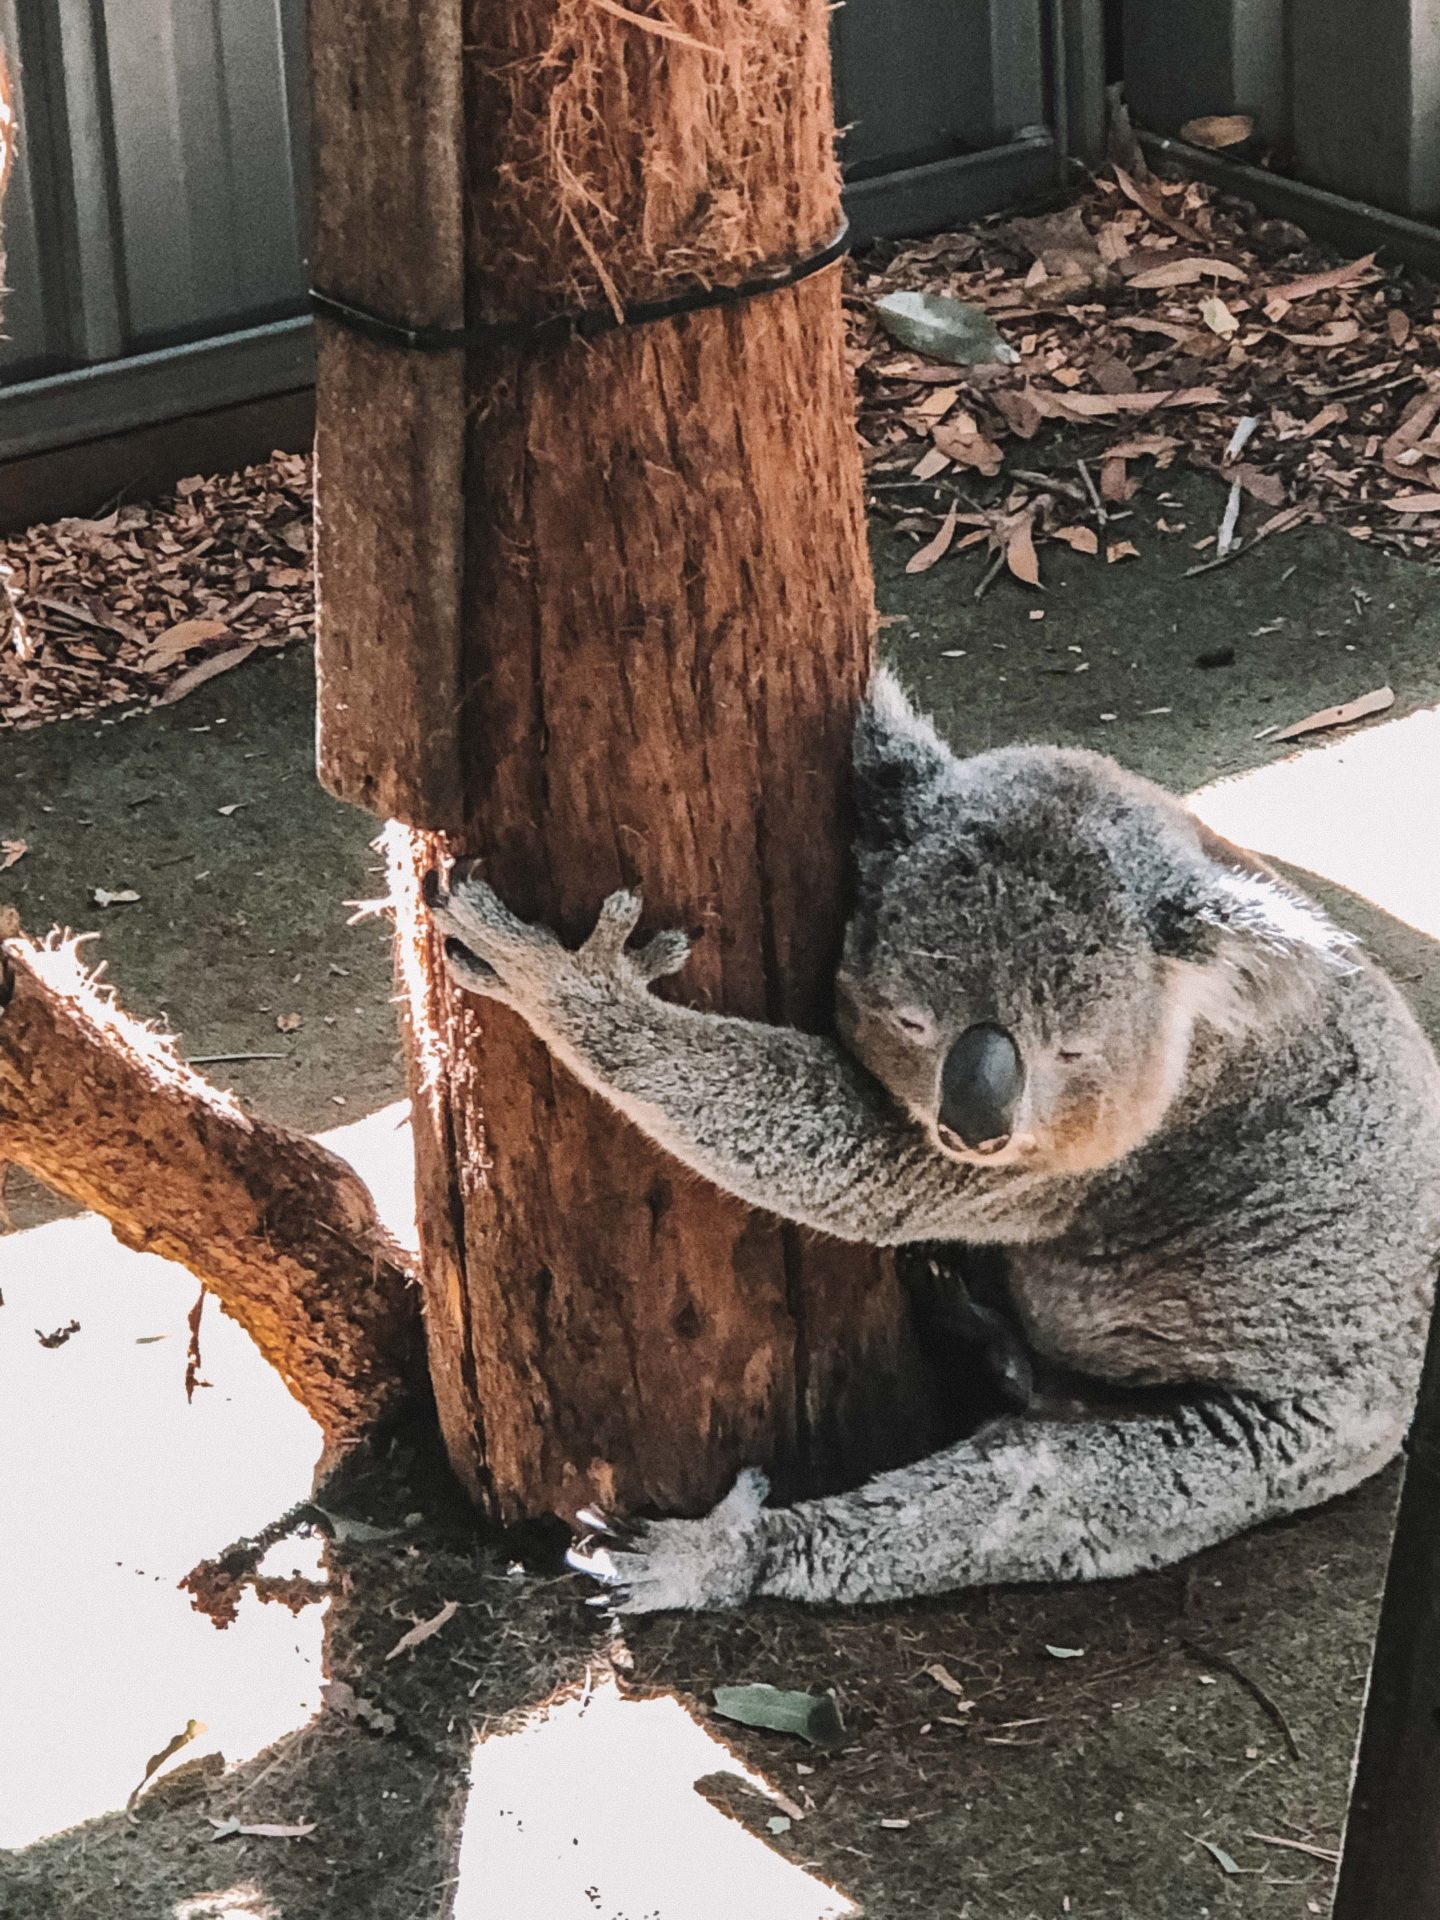 Port Macquarie Koalas Hospital Phare Byron Bay - Blondie Baby blog mode et voyages